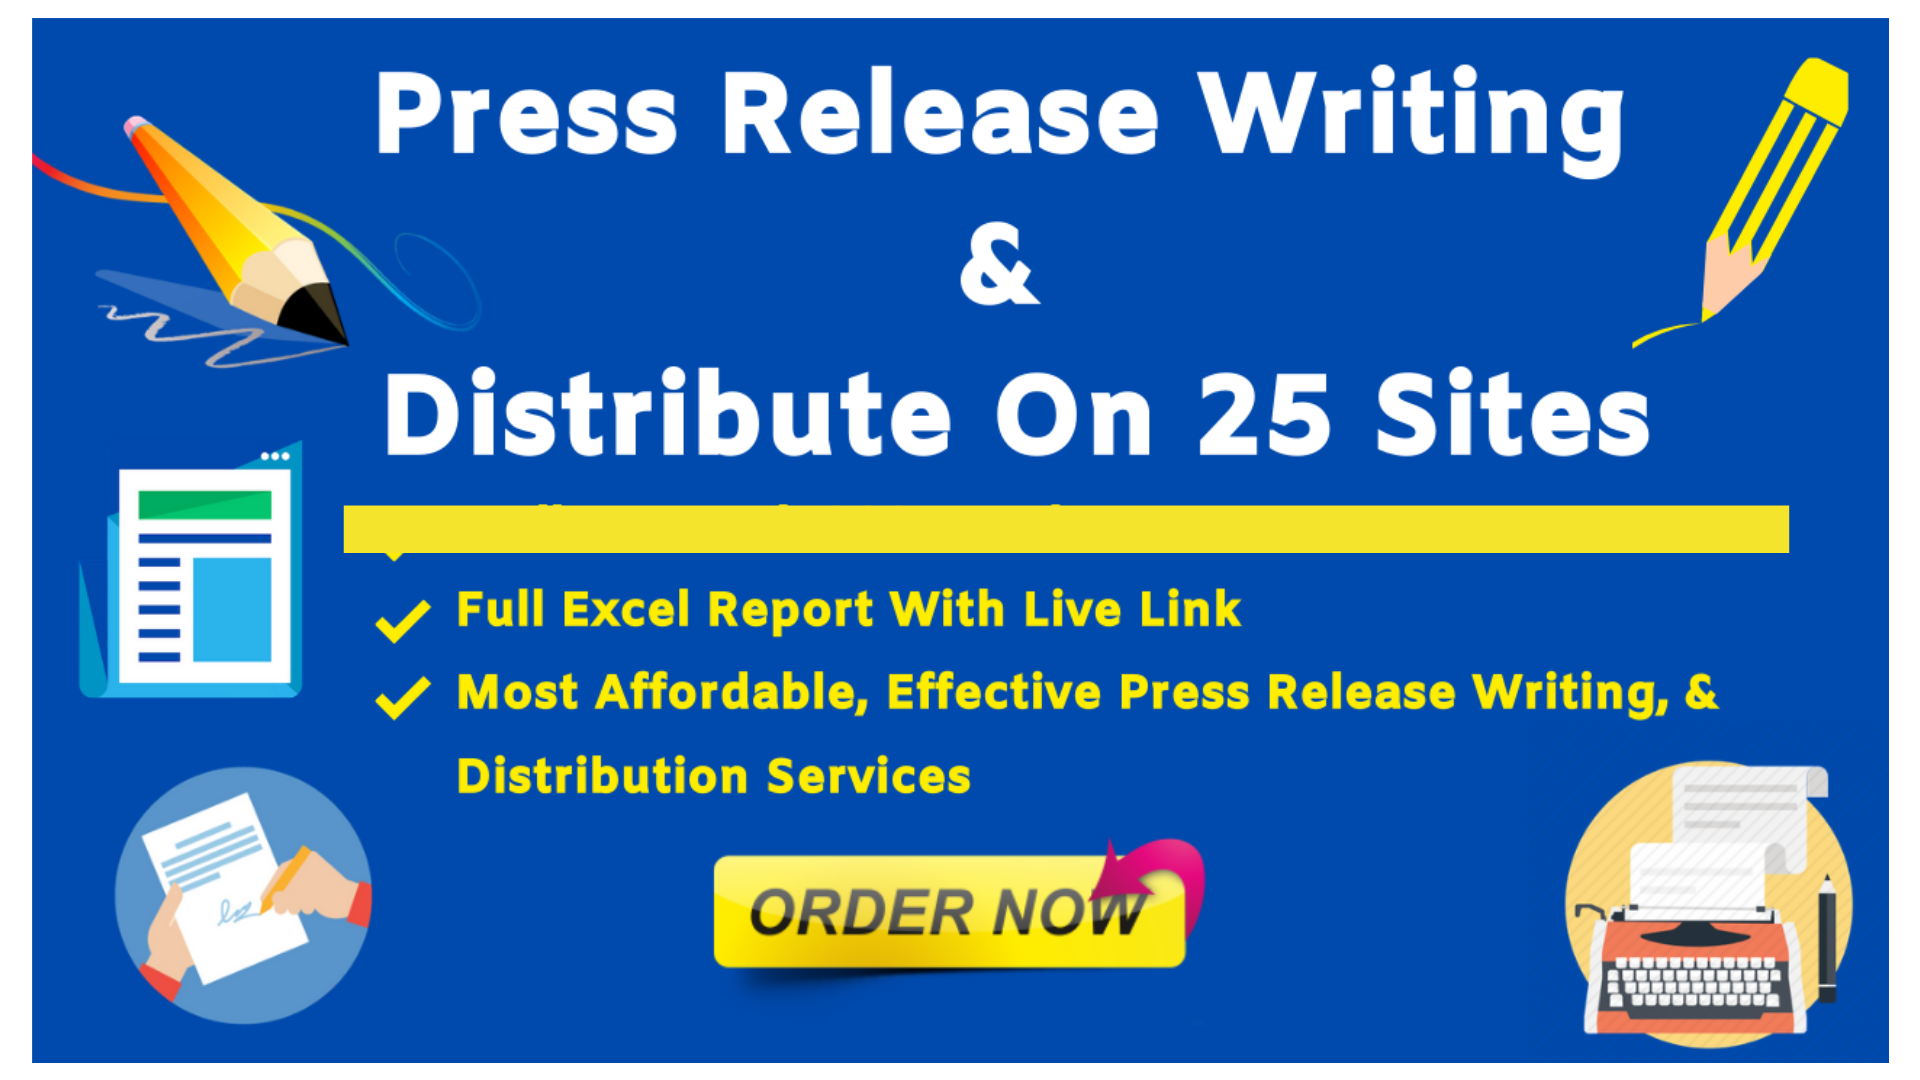 I will do press release distribution on 25 sites in 24 hours